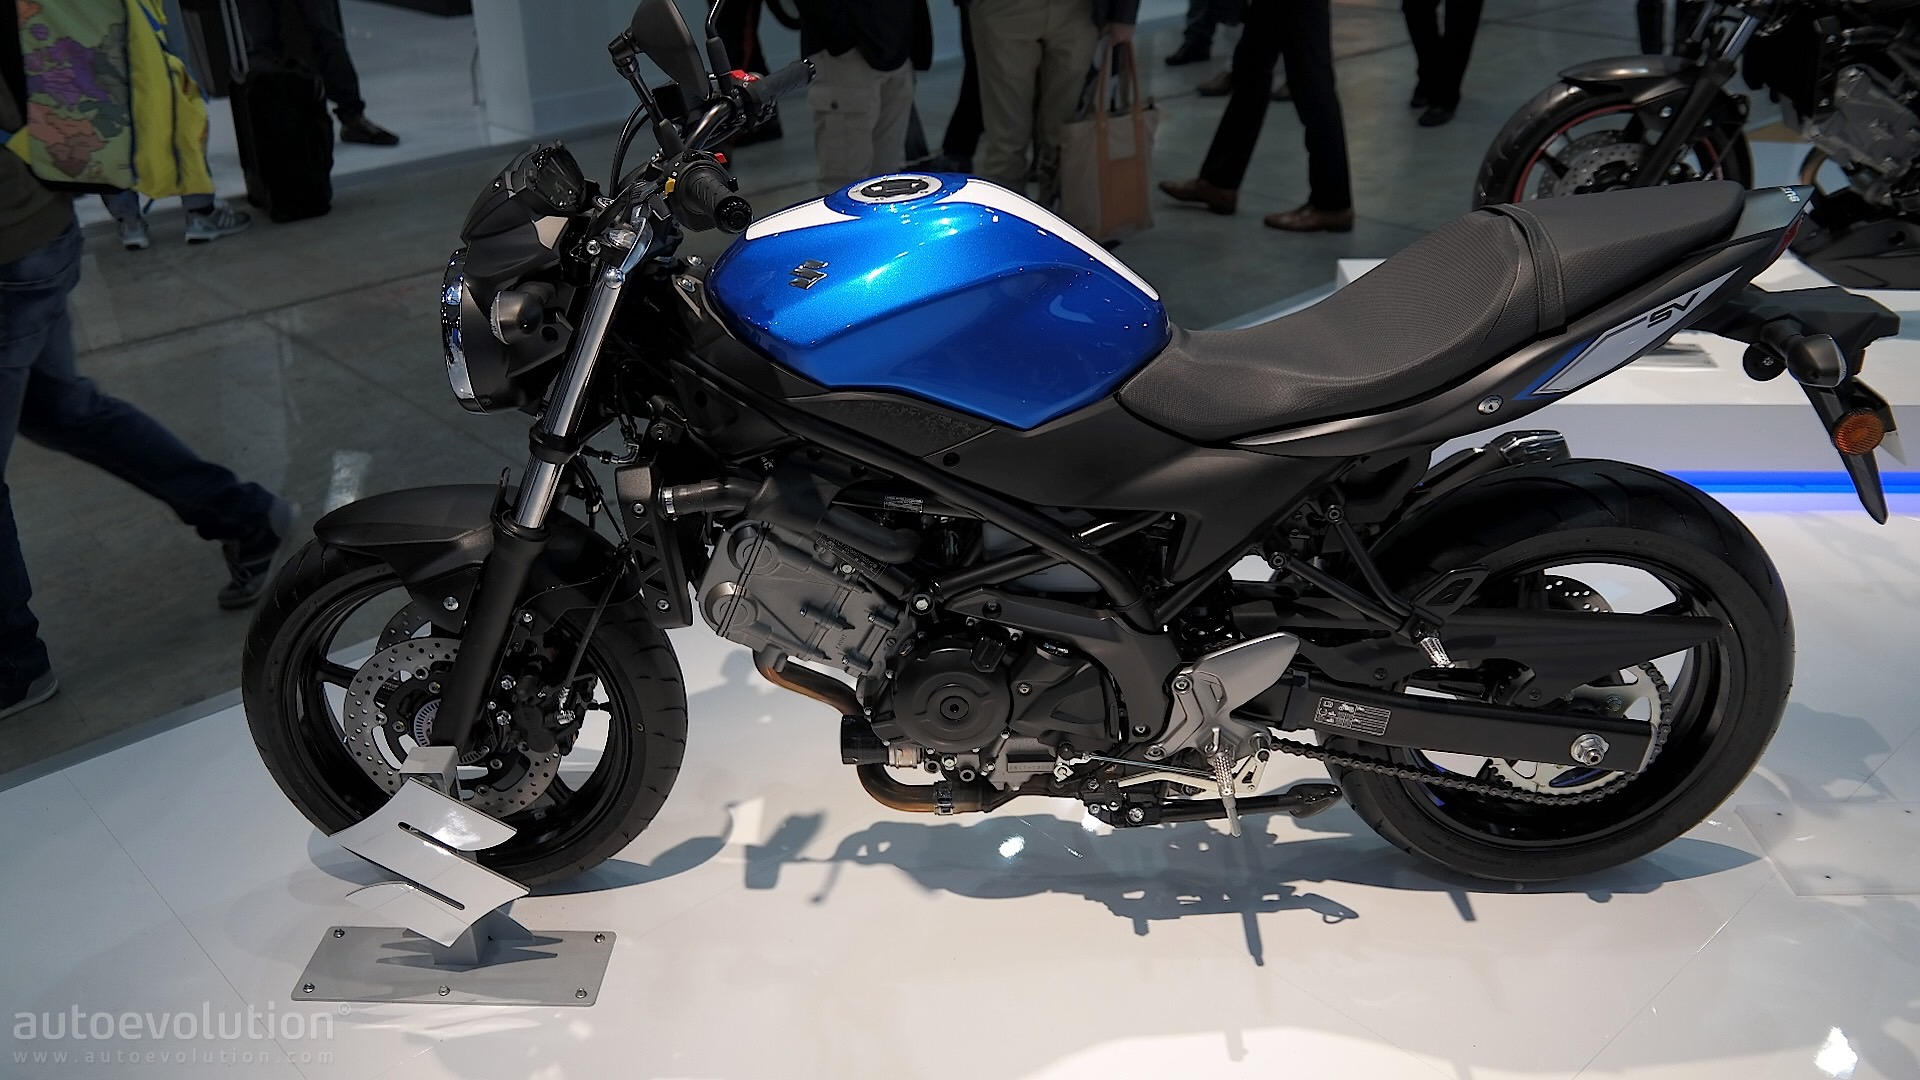 eicma 2016 suzuki sv650 is lighter faster and smarter. Black Bedroom Furniture Sets. Home Design Ideas